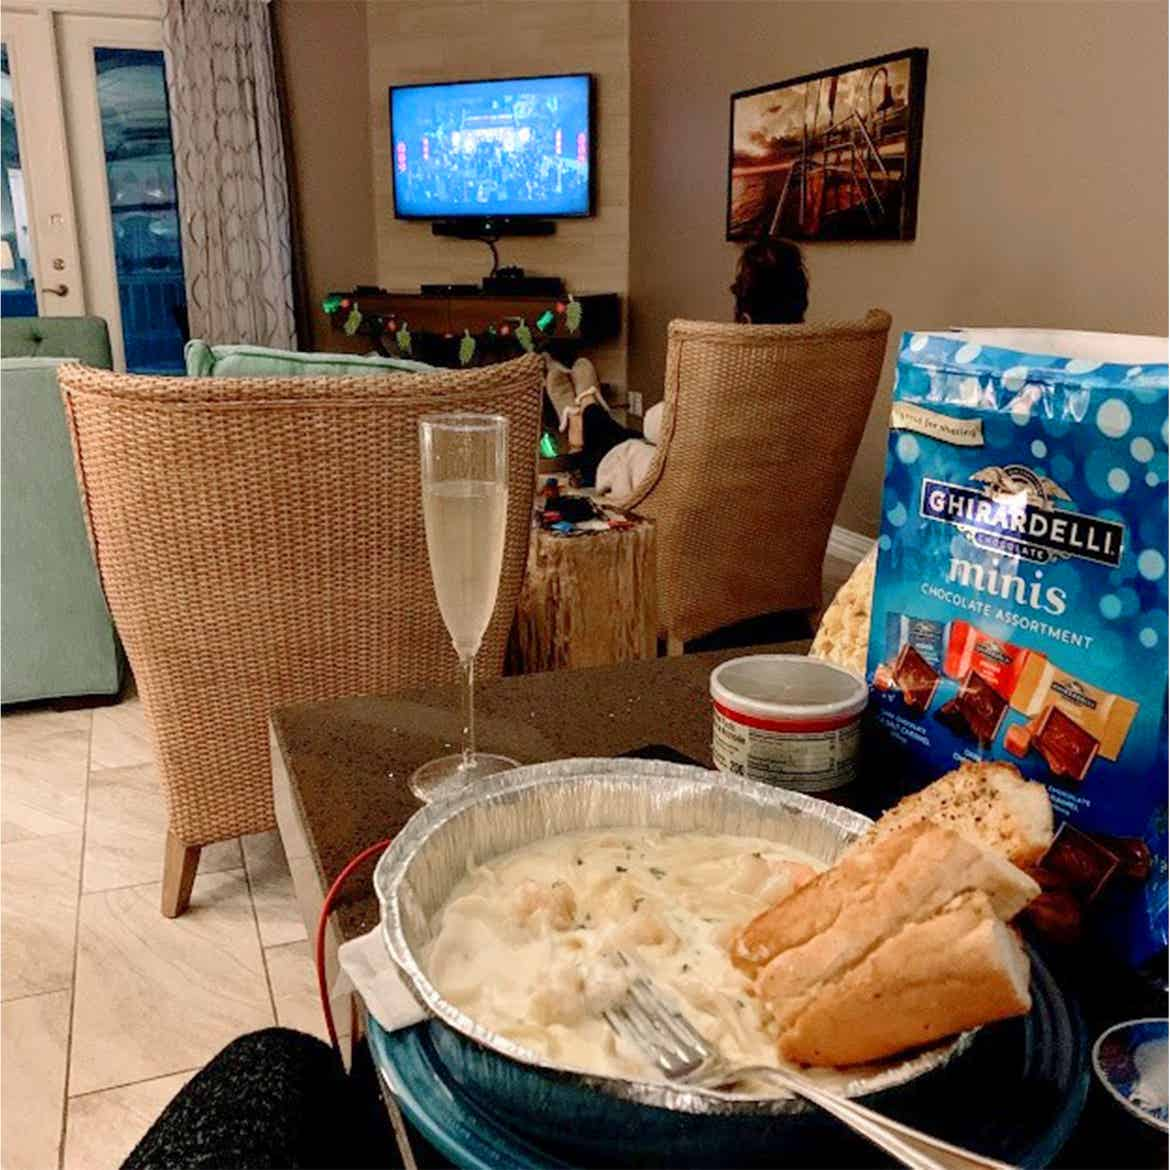 Champagne, chocolates and pasta placed on a table inside the villa of our Galveston Beach Resort in Galveston, Tx.